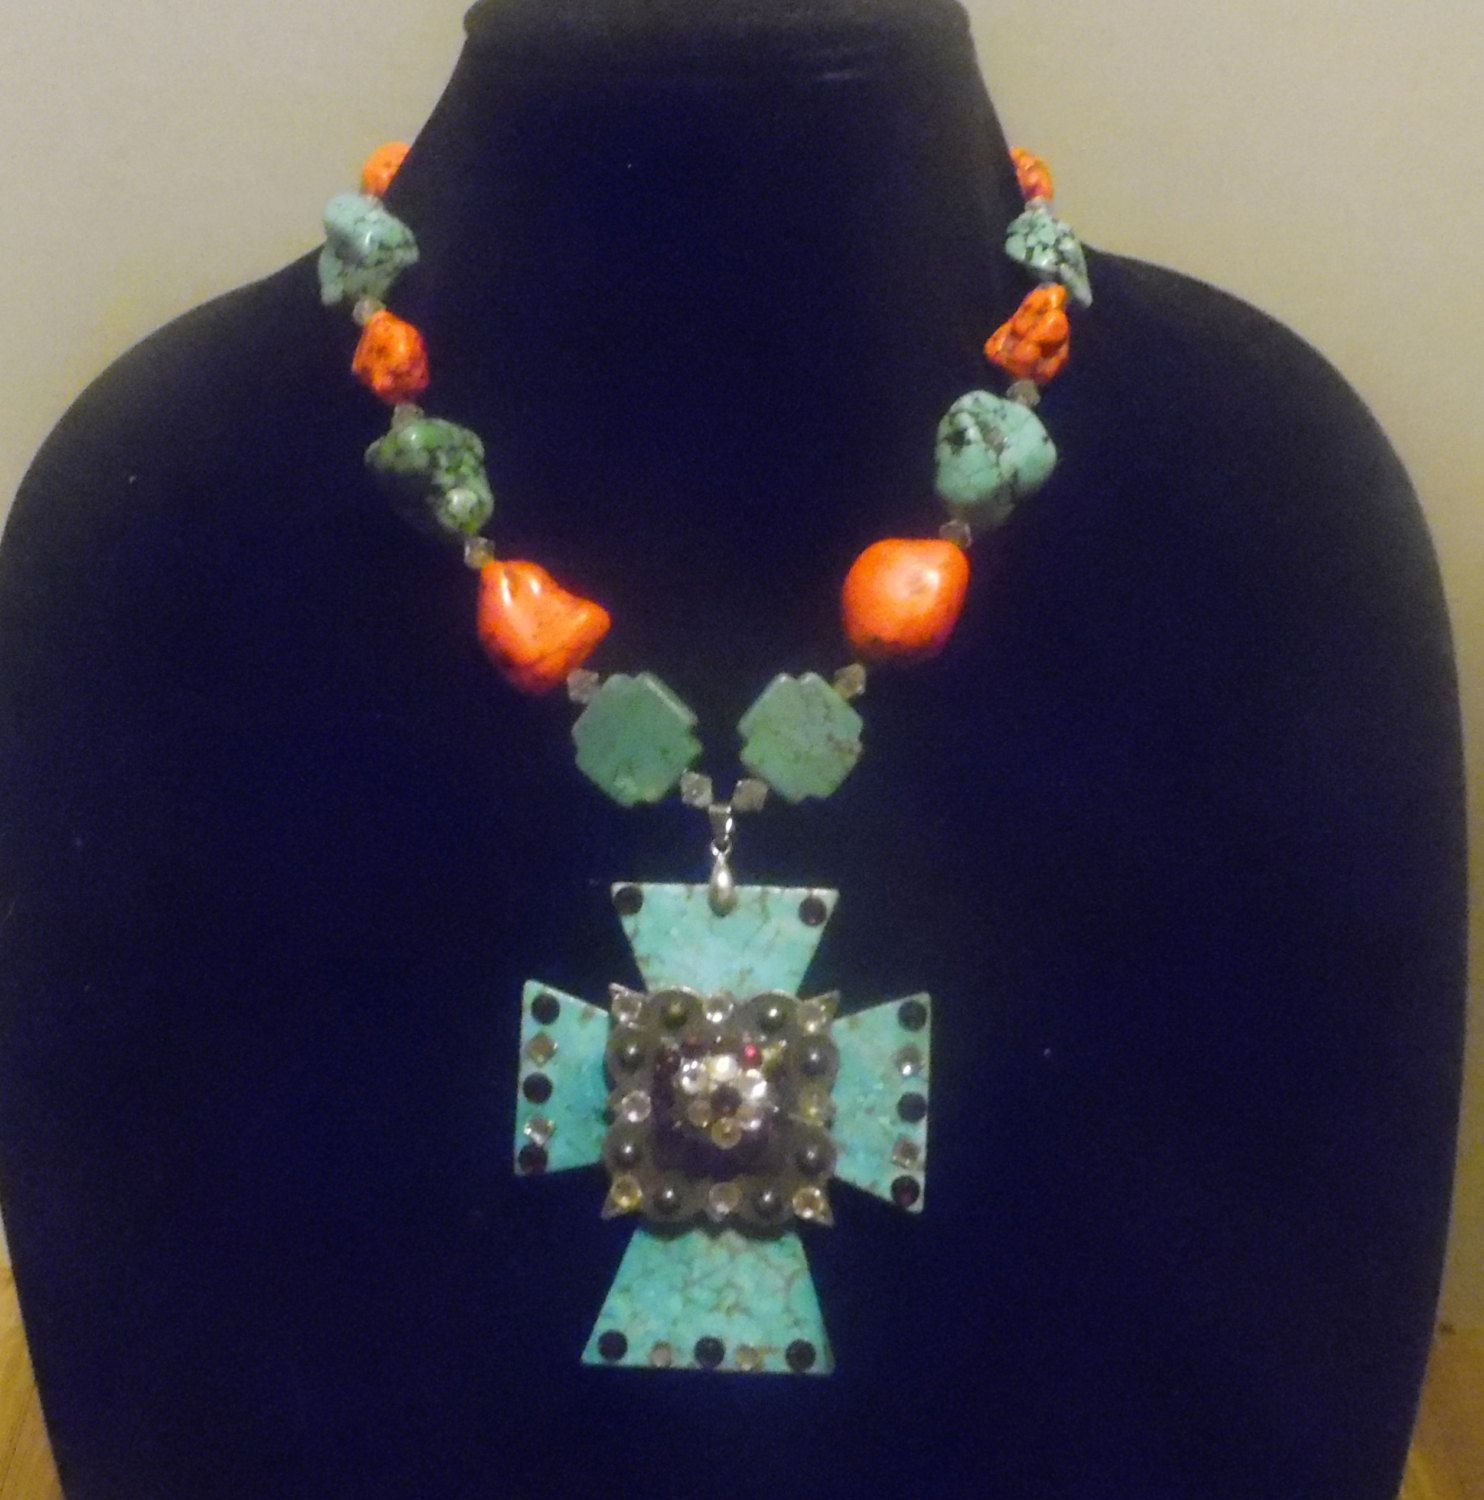 Gypsy Cowgirl Chic Turquoise Coral Concho Cross Western Statement Necklace Dramatic Christian Cowgirl Couture BOLD Sexy Hot Gift 4 Her by gypsycowgirlchic on Etsy